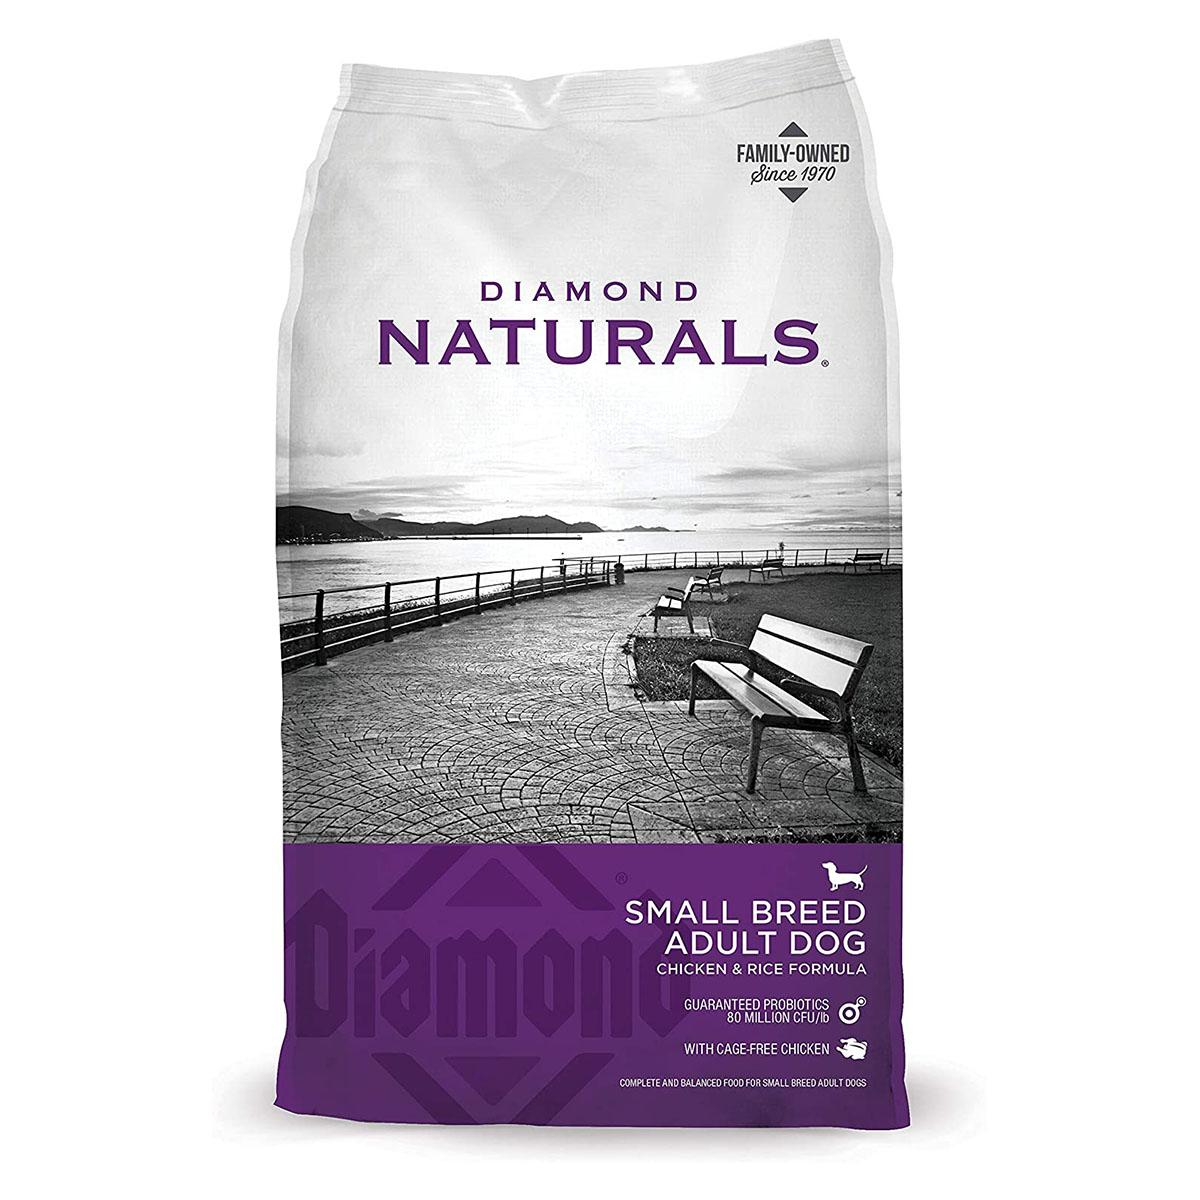 Diamond Naturals Small Breed Adult Dog Food - Chicken and Rice